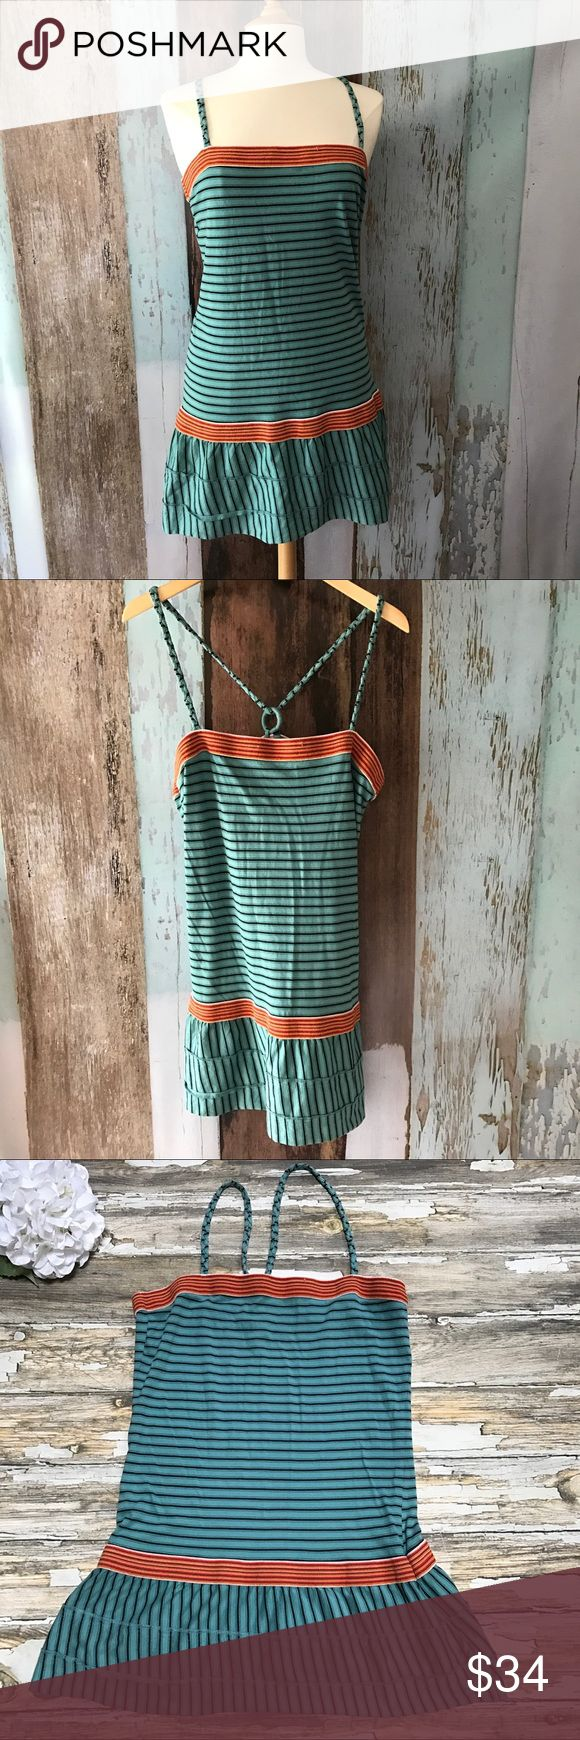 """Free People Dress- Large Free People Dress Womens Soft Knit Festival Striped Woven Hippie Boho  Size: Large Color:  Blue-Green with Black, and Orange / Red Contrast Style: Sundress Pattern / Print: Striped / Woven Contrast Features: Braided Straps, Back Straps Adjust through Ring. Material: 100% Cotton  Measurements:  Underarm to Underarm: 18""""-21"""" Length: 25"""" ( Not including straps, Just Underarm to Hem) #170530-1859 Free People Dresses"""